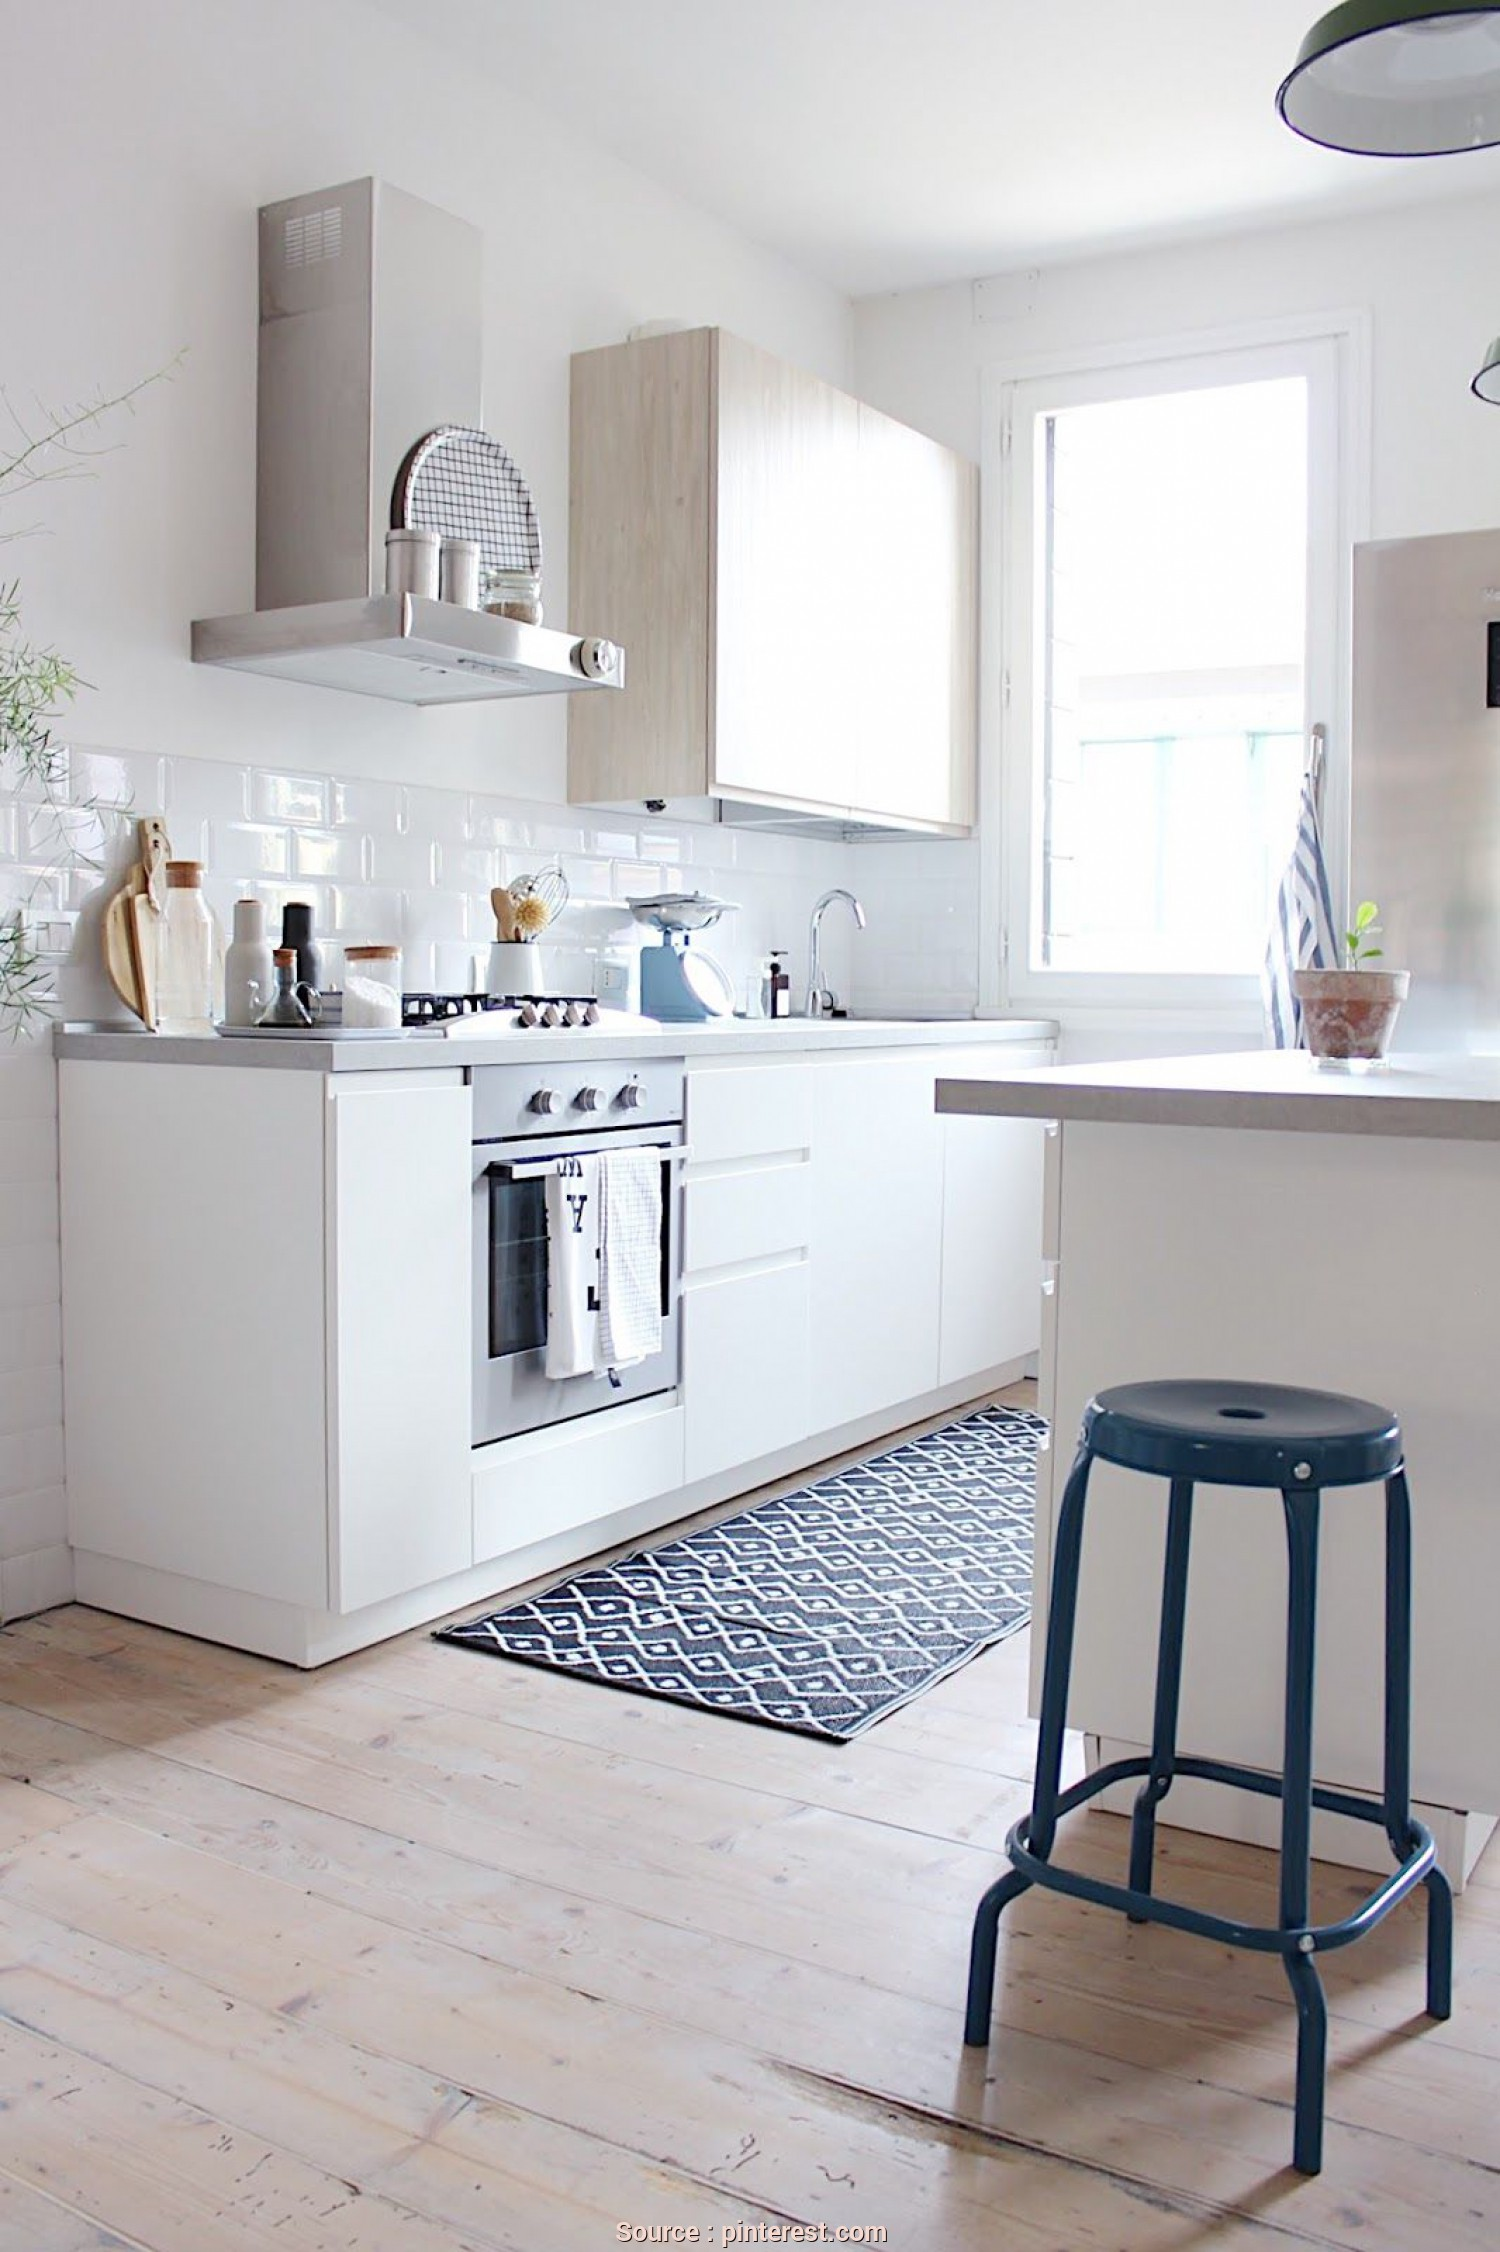 La Tazzina, Pinterest, Fantasia La Tazzina,, My Kitchen, Kitchen & Dining Room, Pinterest